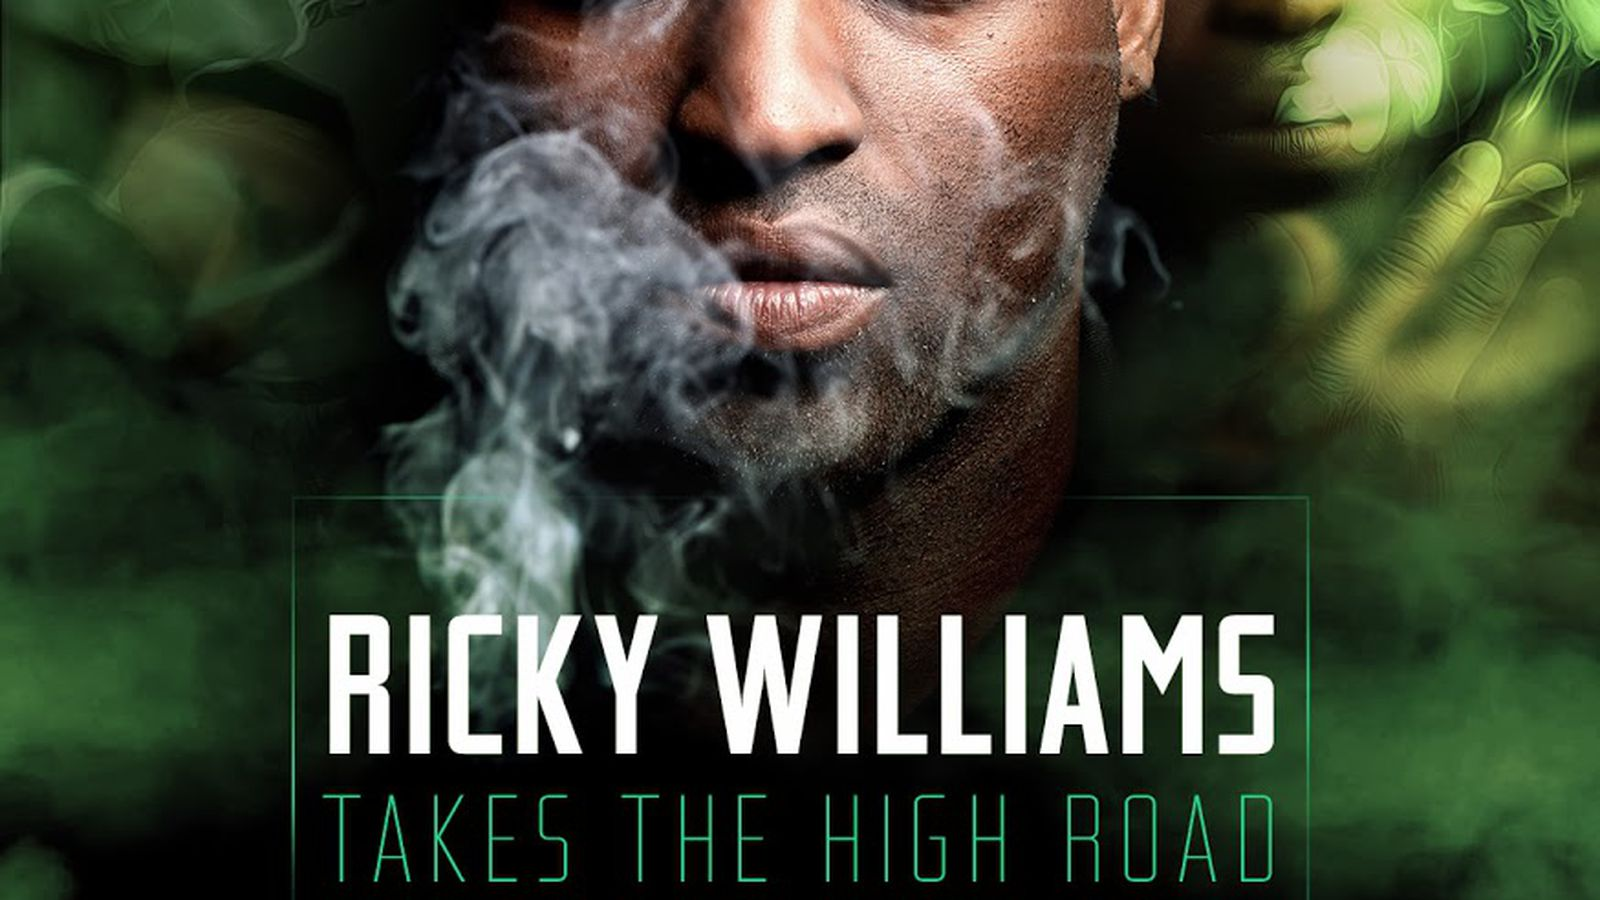 Sports_20illustrated_20films_20poster_20--_20ricky_20williams_1_.0